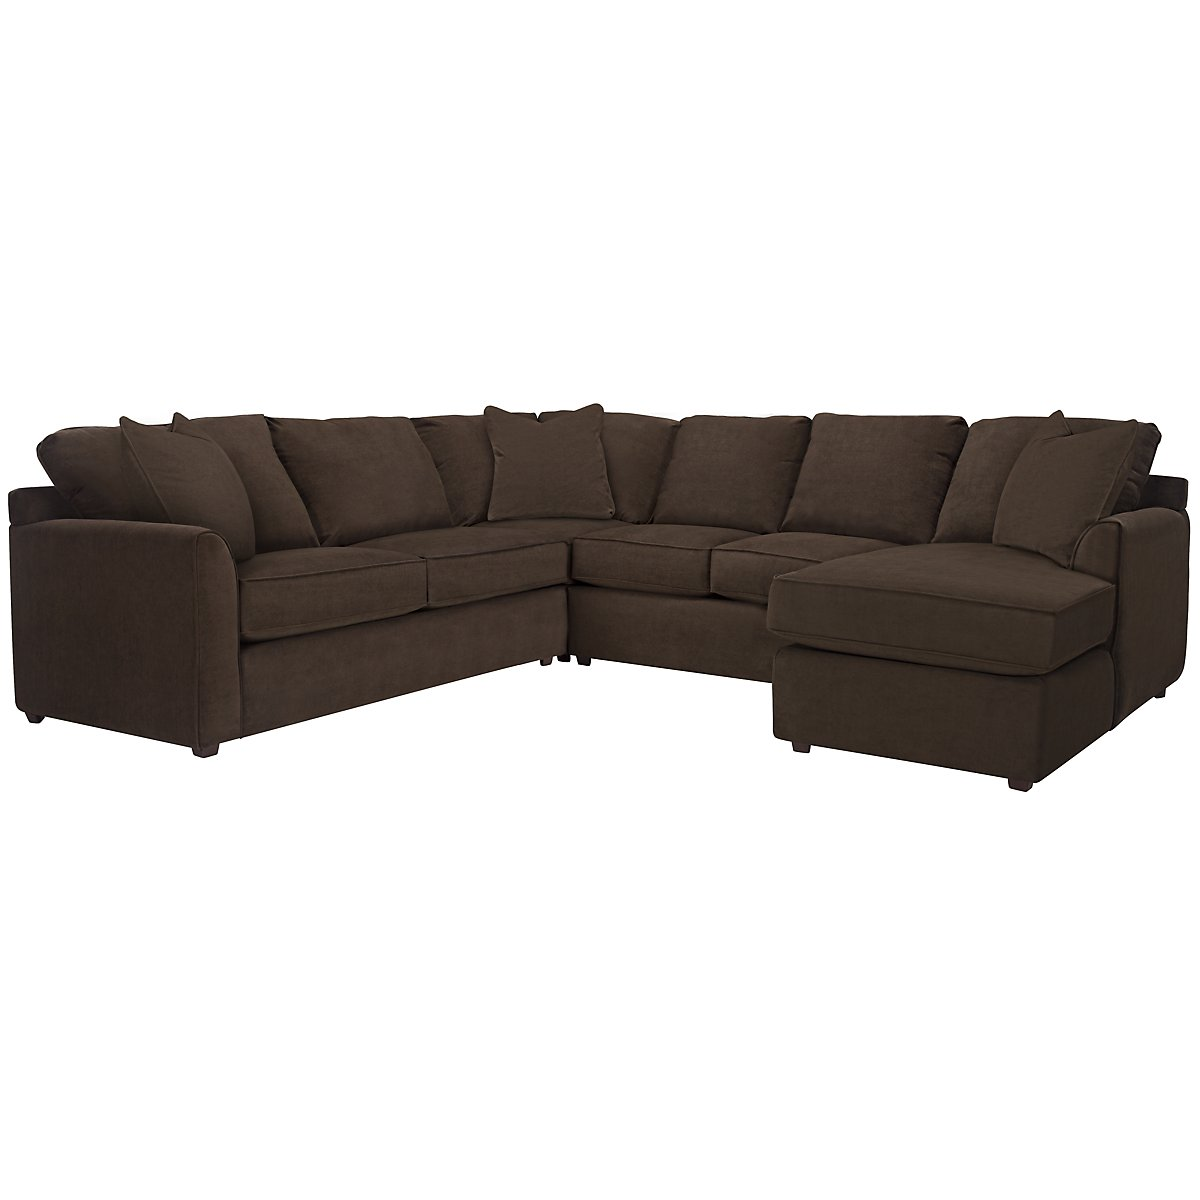 Express3 Dark Brown Microfiber Small Right Chaise Sectional